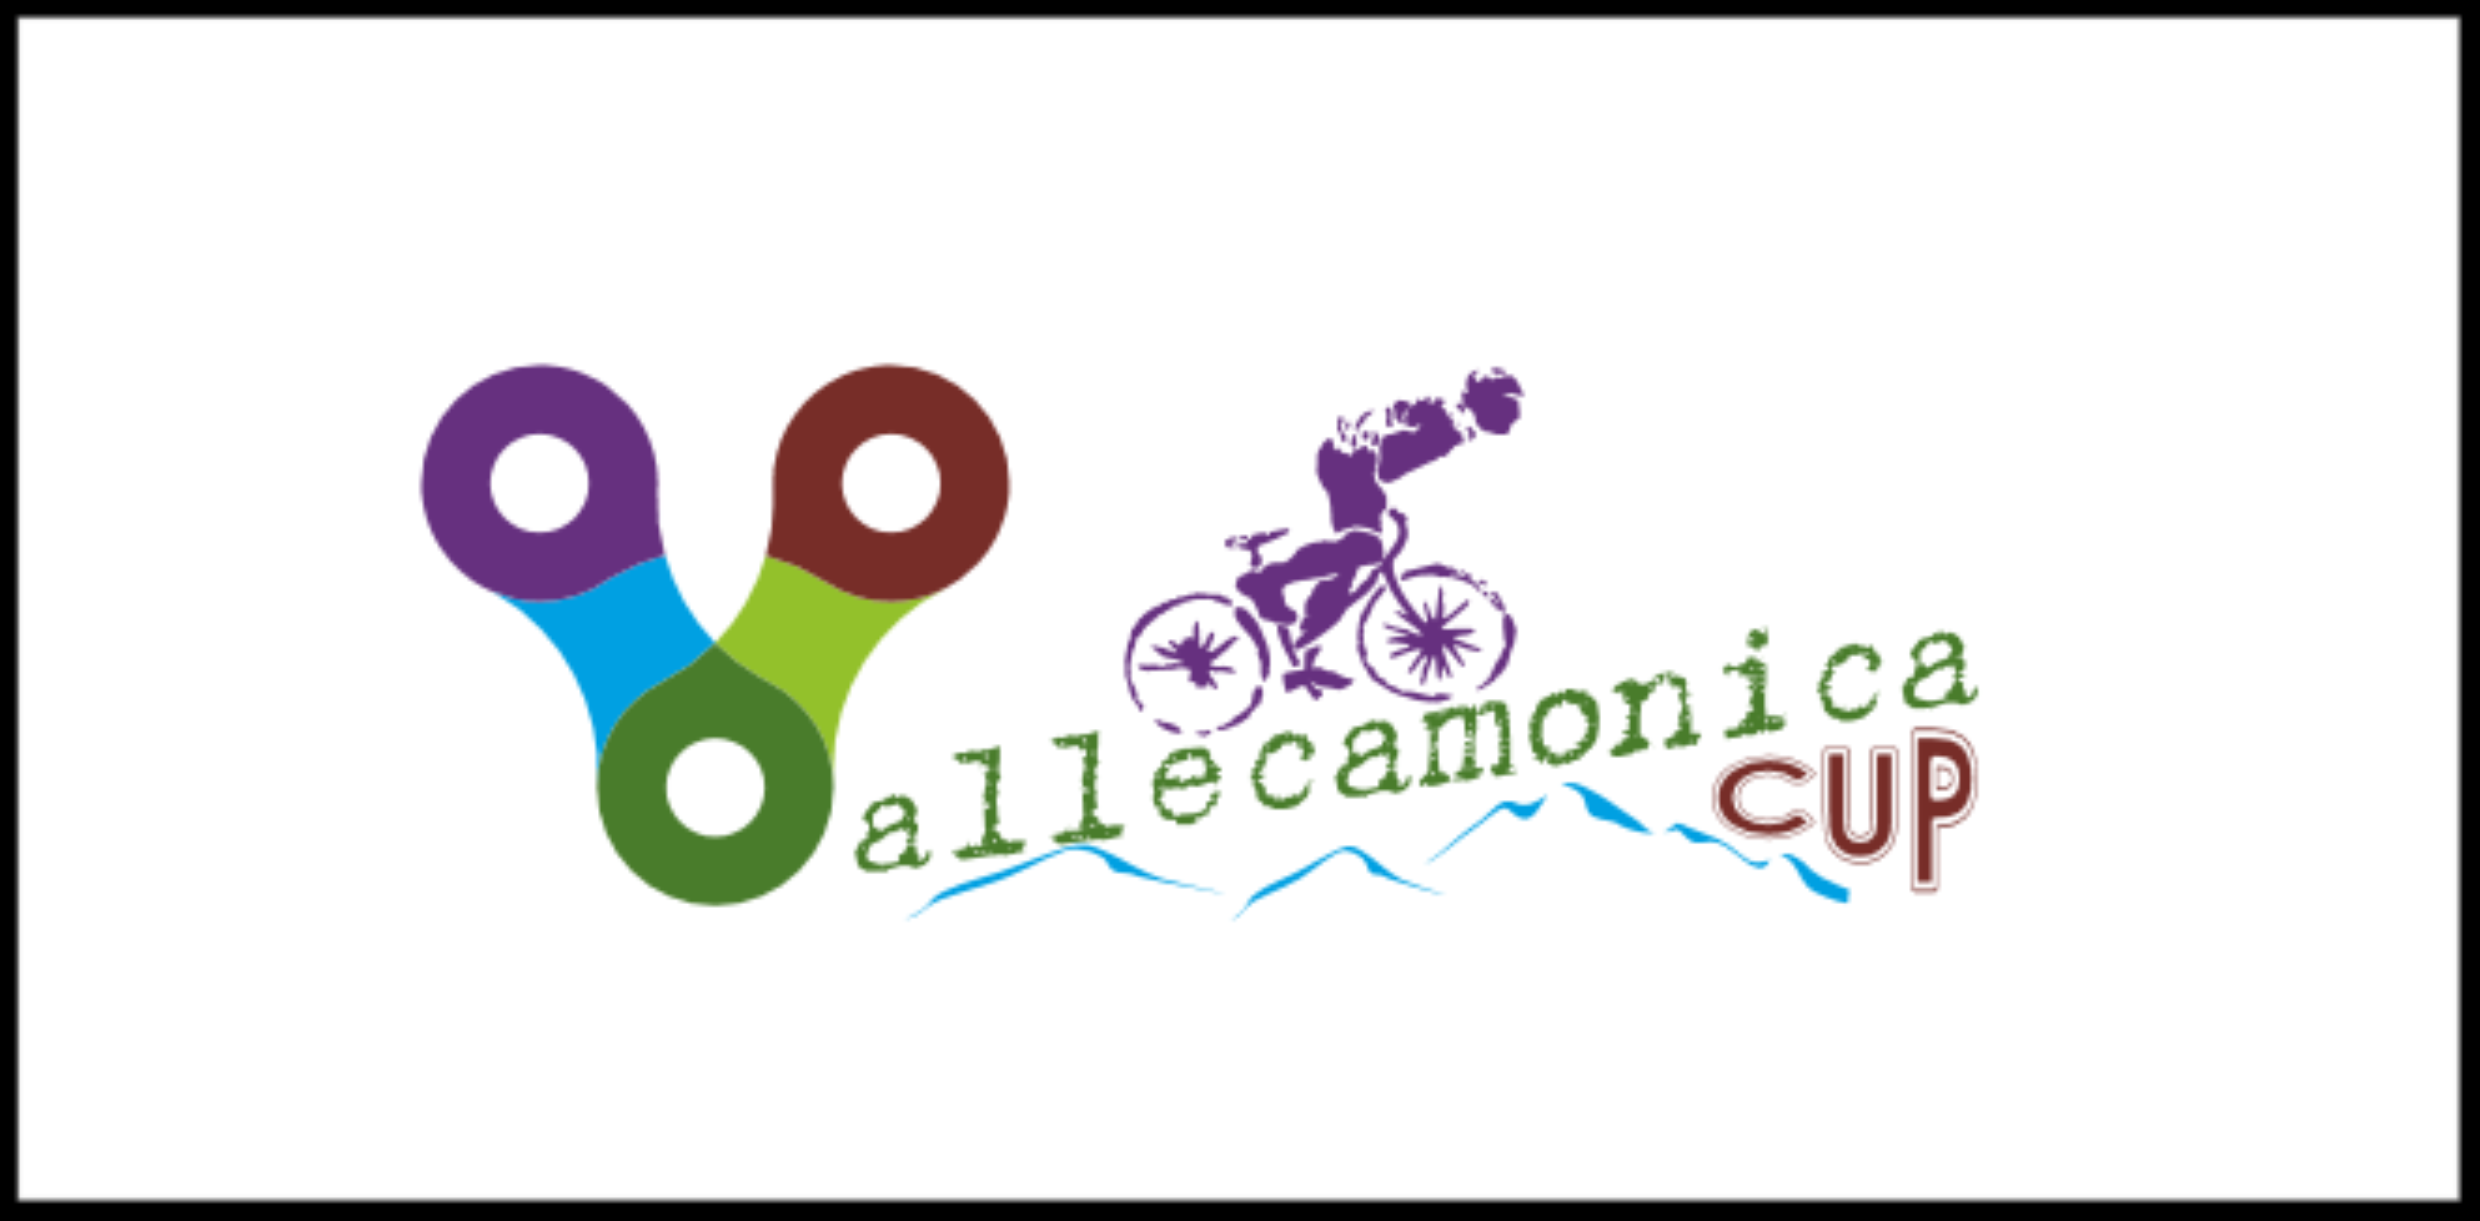 VALLLECAMONICA BIKE CUP 2018